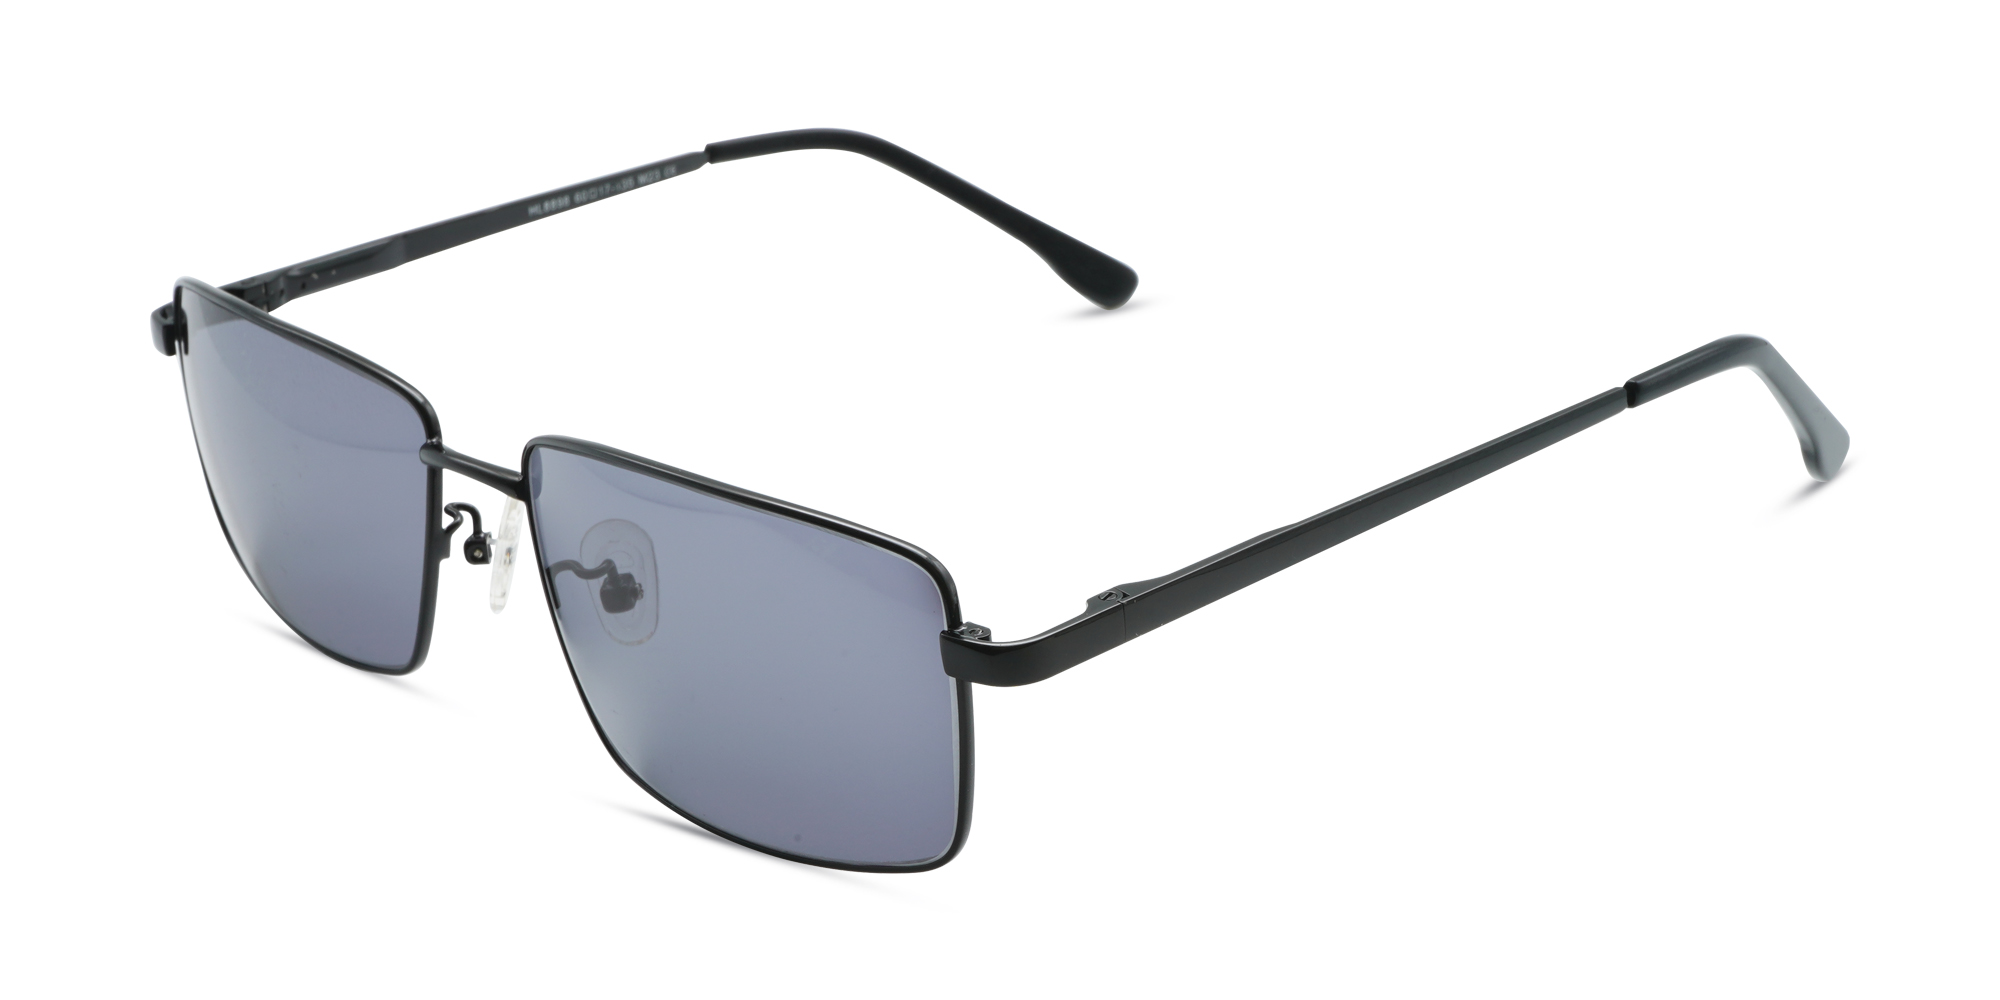 Hudson Sunglasses Black